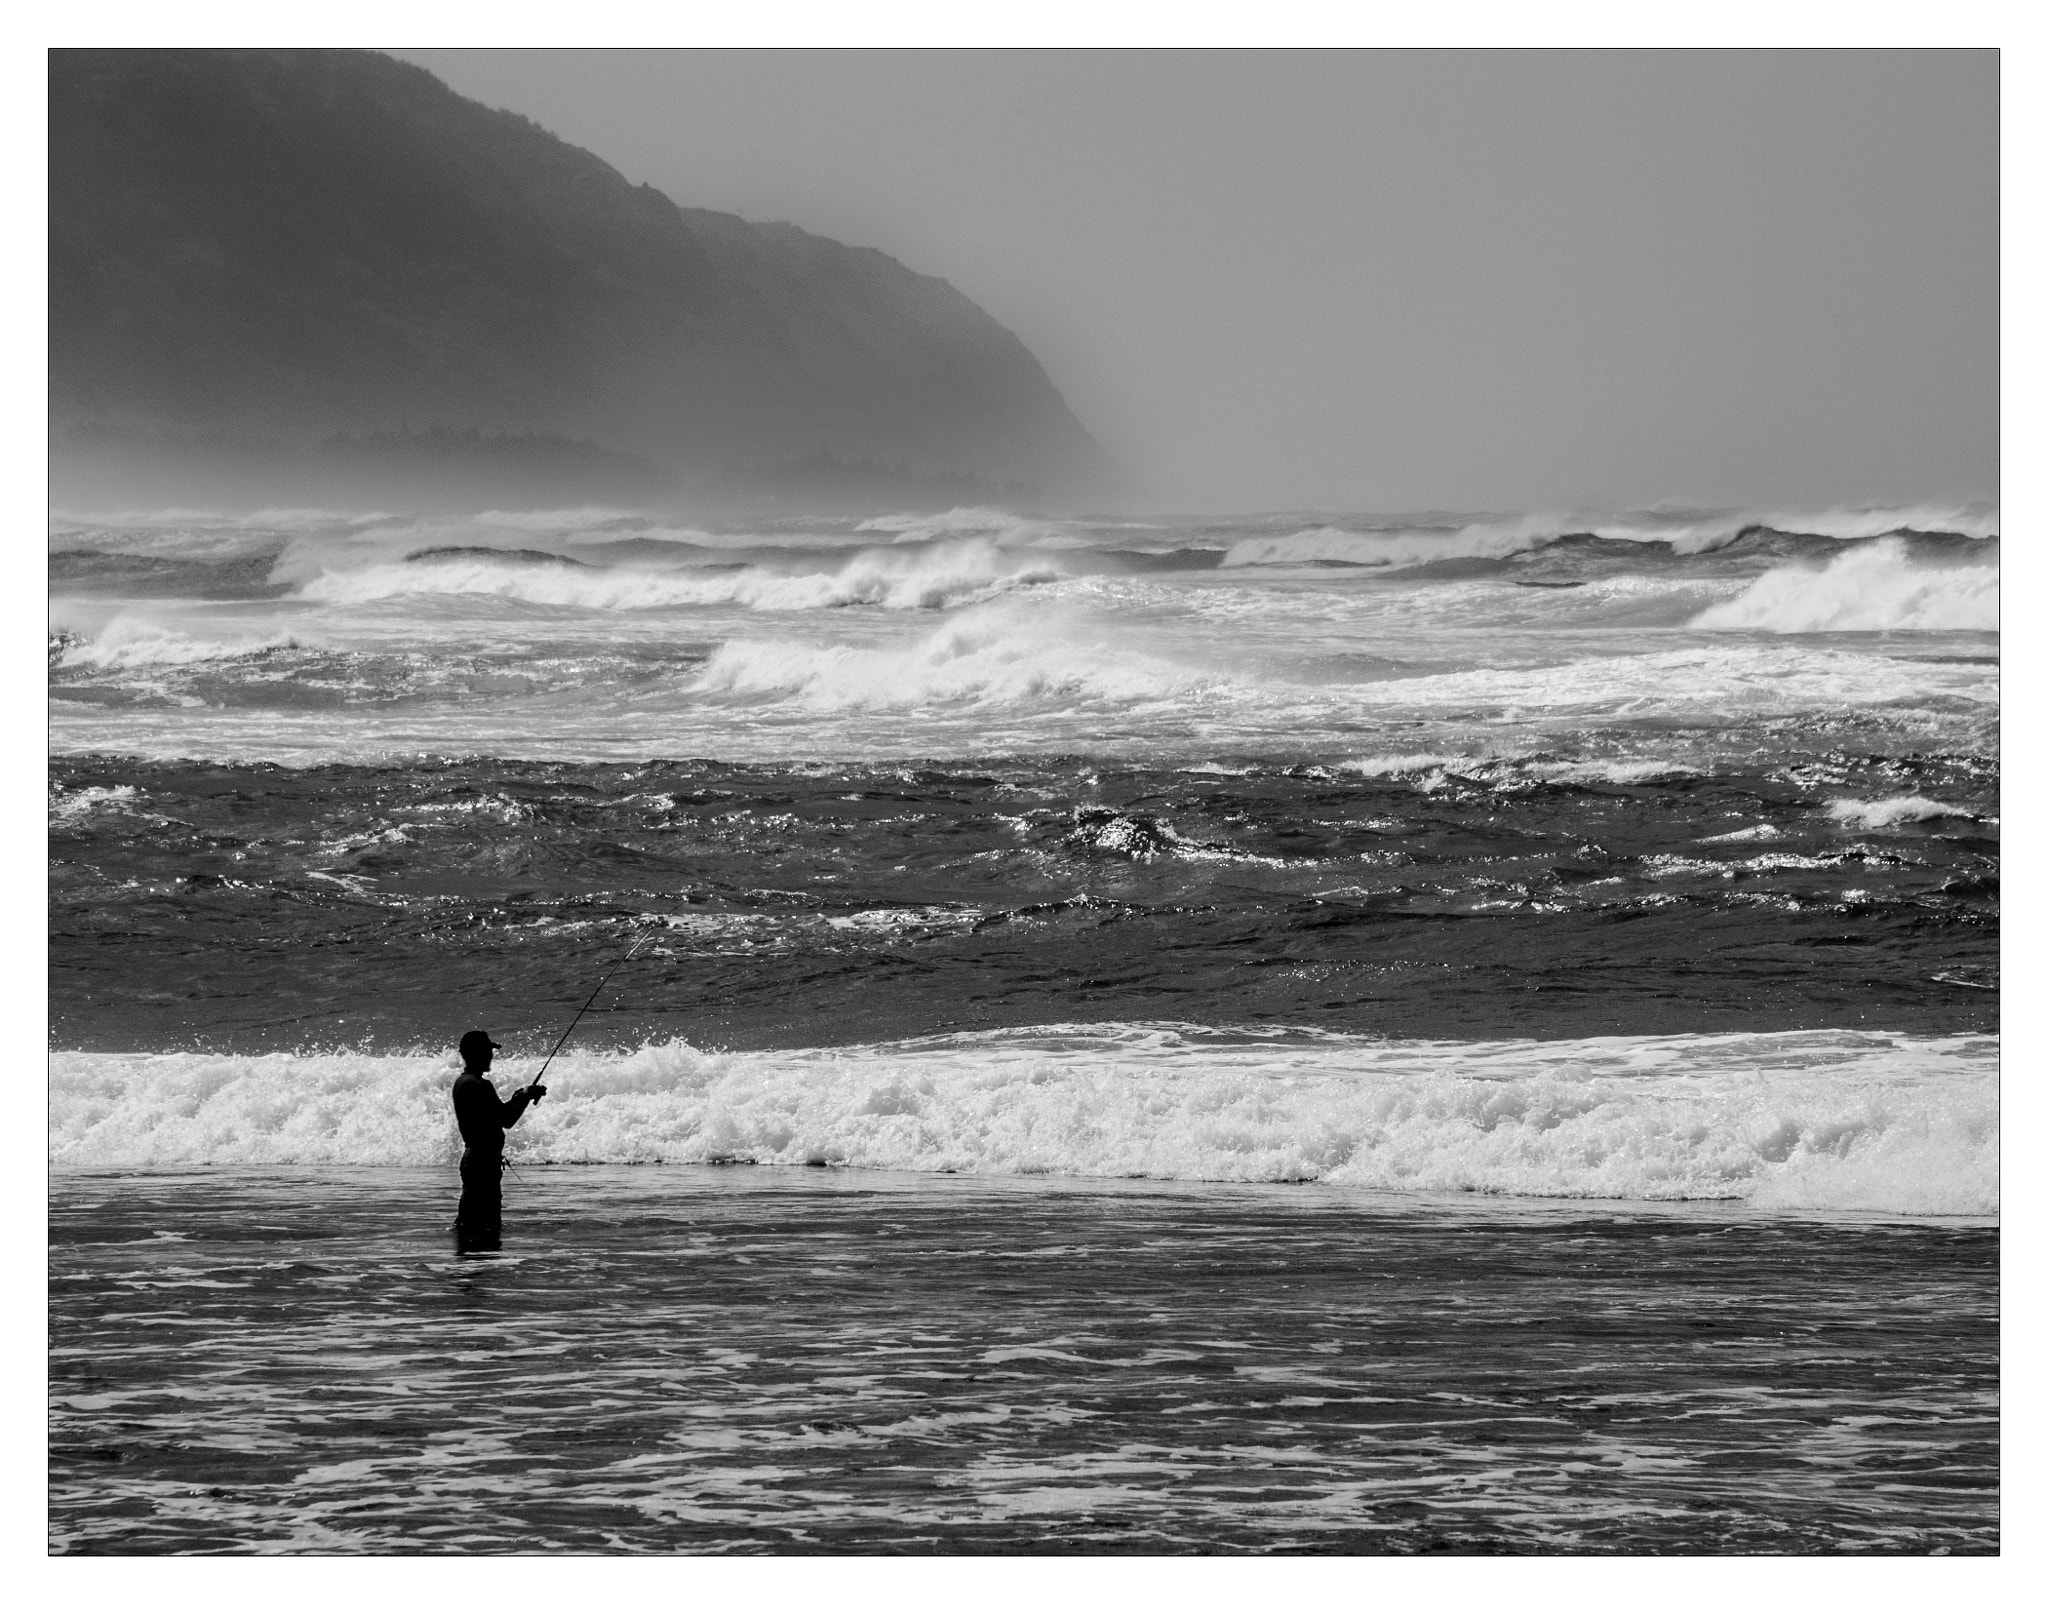 Photograph The Beach by Uwe Ehlert on 500px